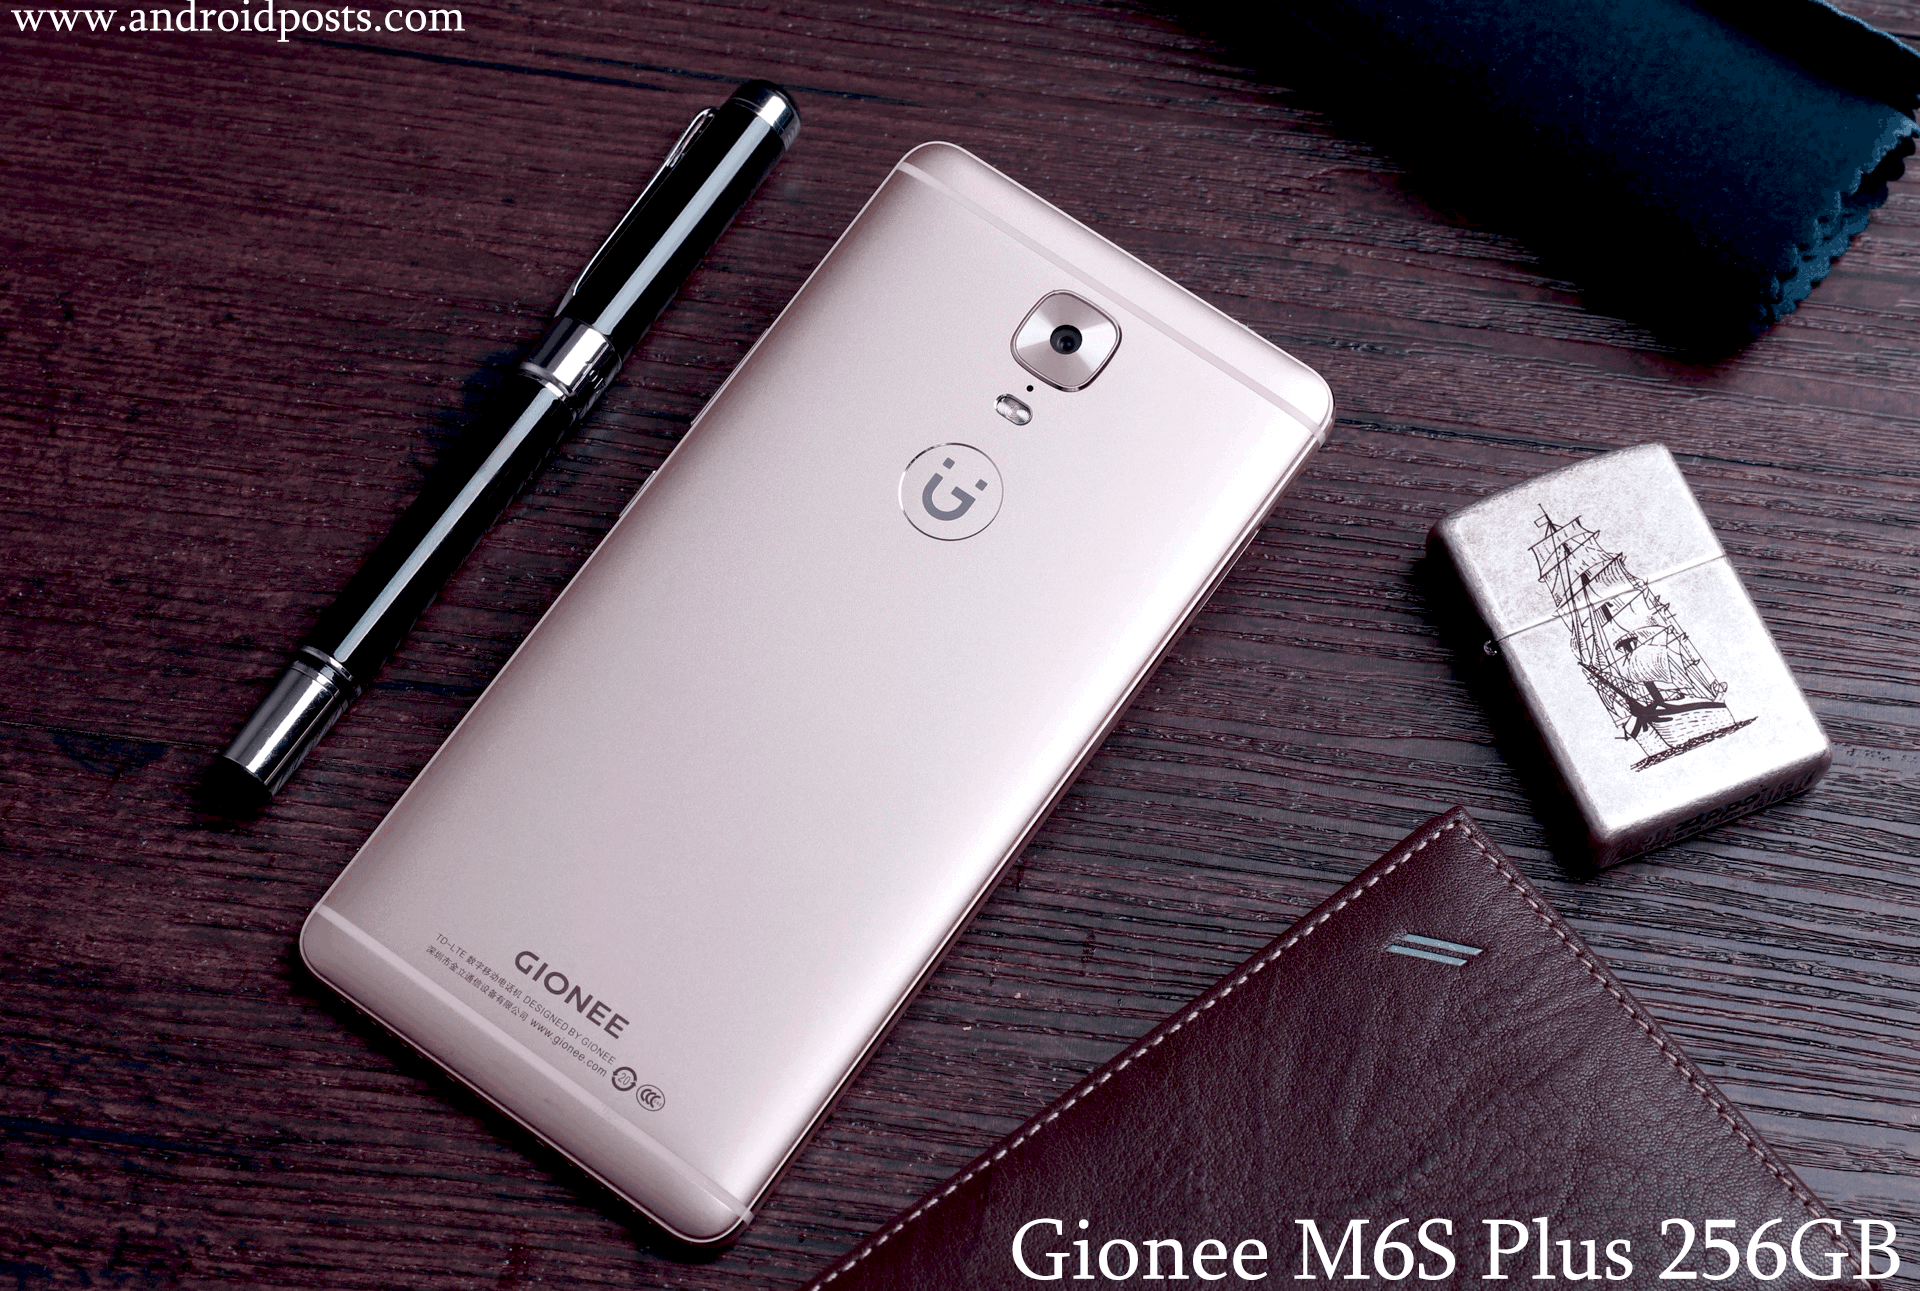 Gionee smartphones/androidposts.com